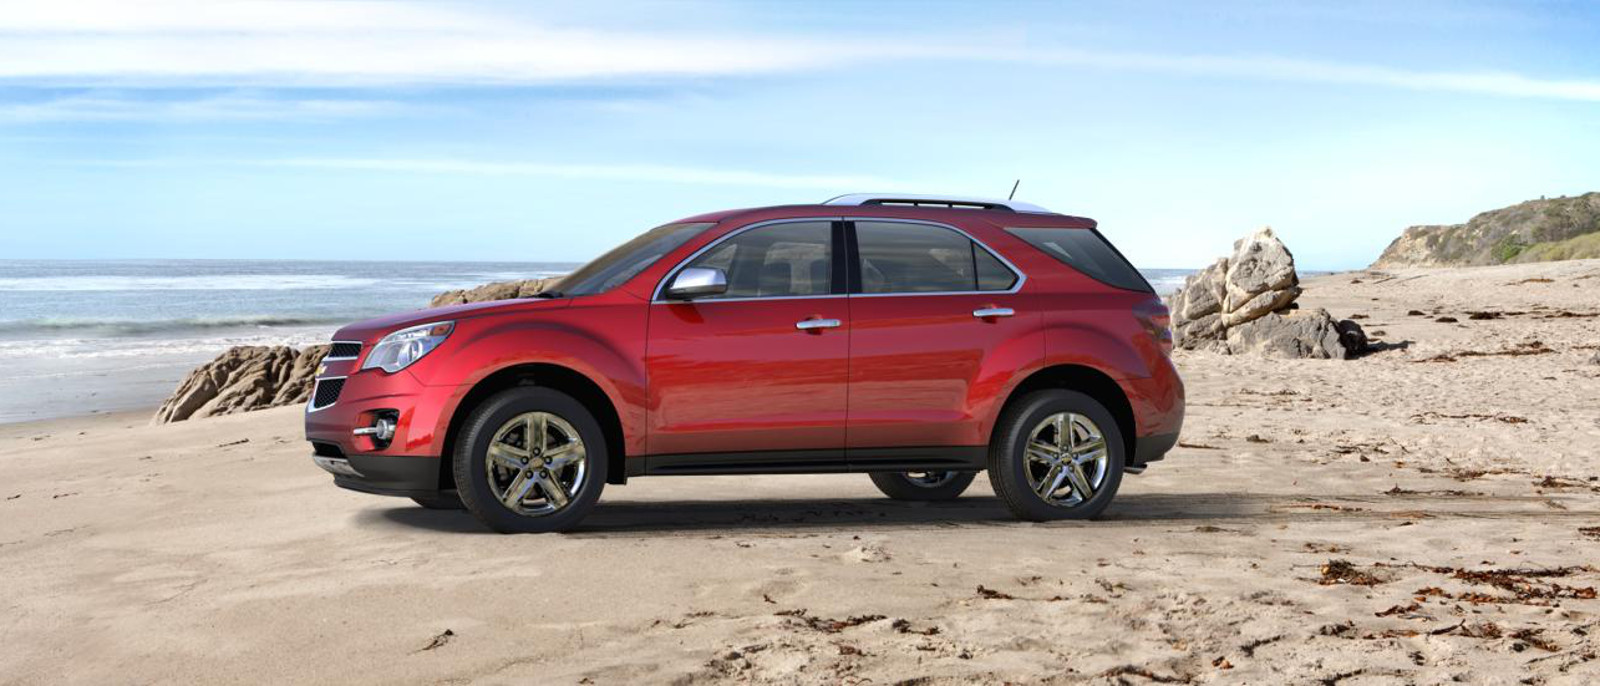 2015 Chevrolet Equinox Parts and Accessories Automotive